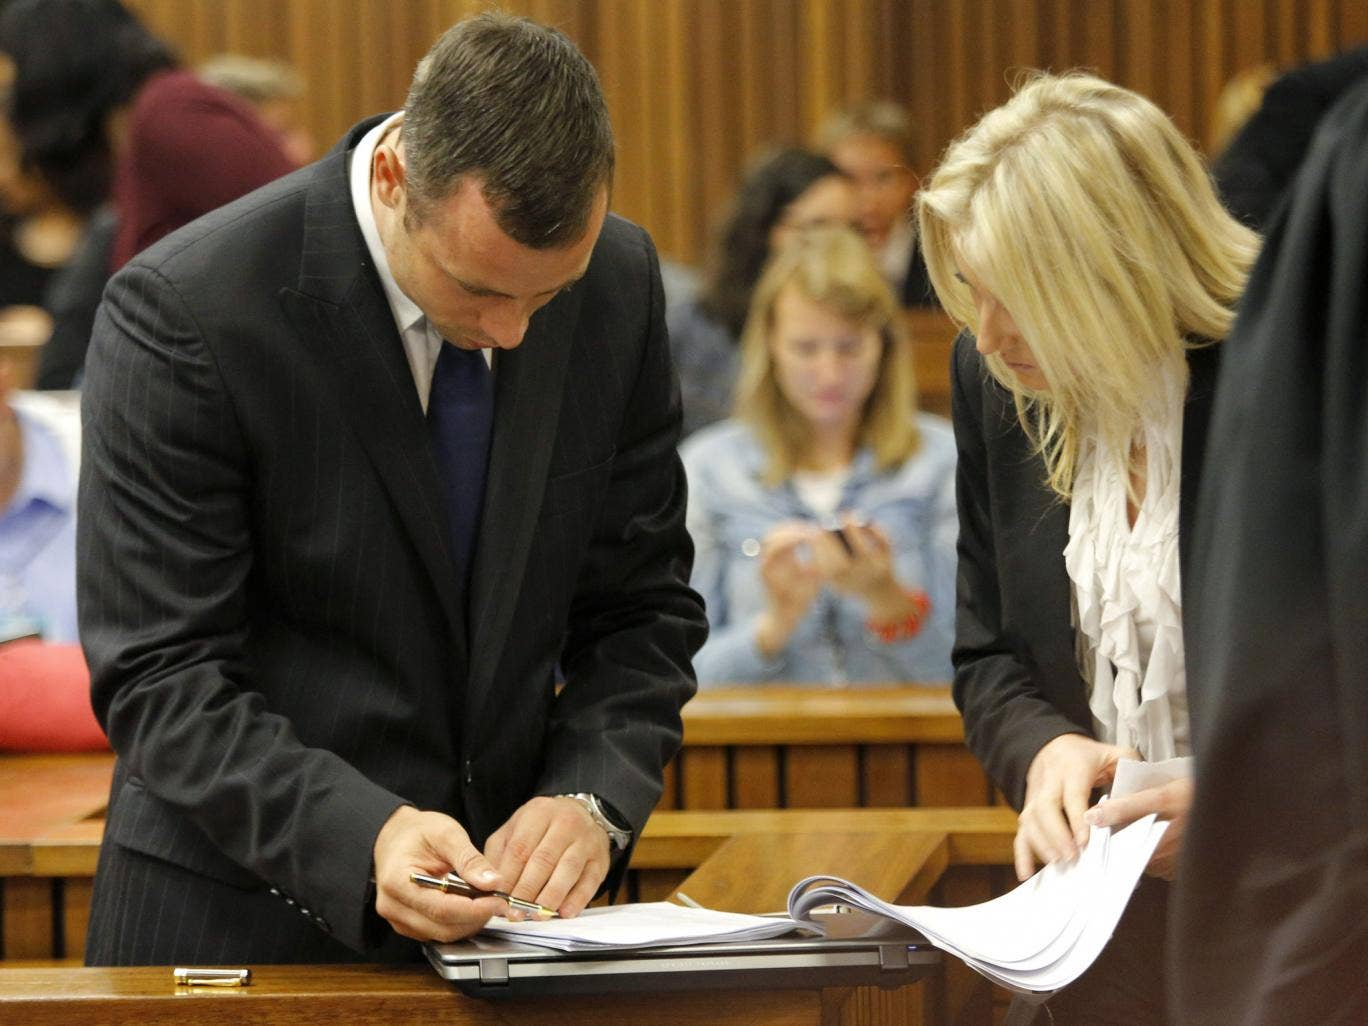 Oscar Pistorius looks at his defense team paperwork during a break on the second day of his trial at the North Gauteng High Court in Pretoria